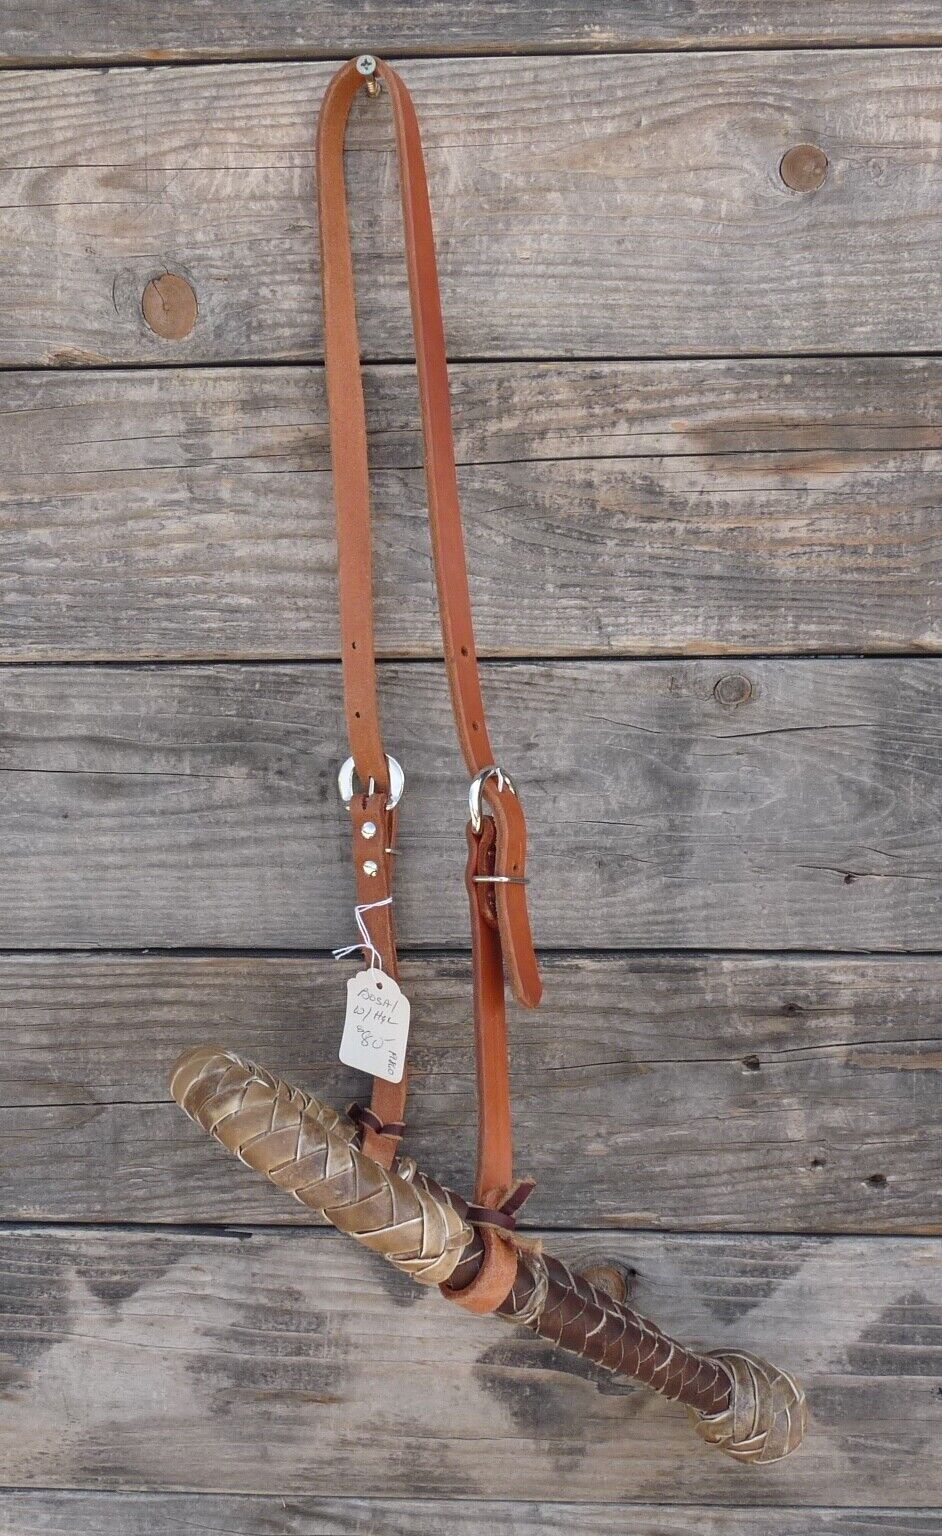 Braided Rawhide Bosal and Harness Leather Hanger 19860   on sale